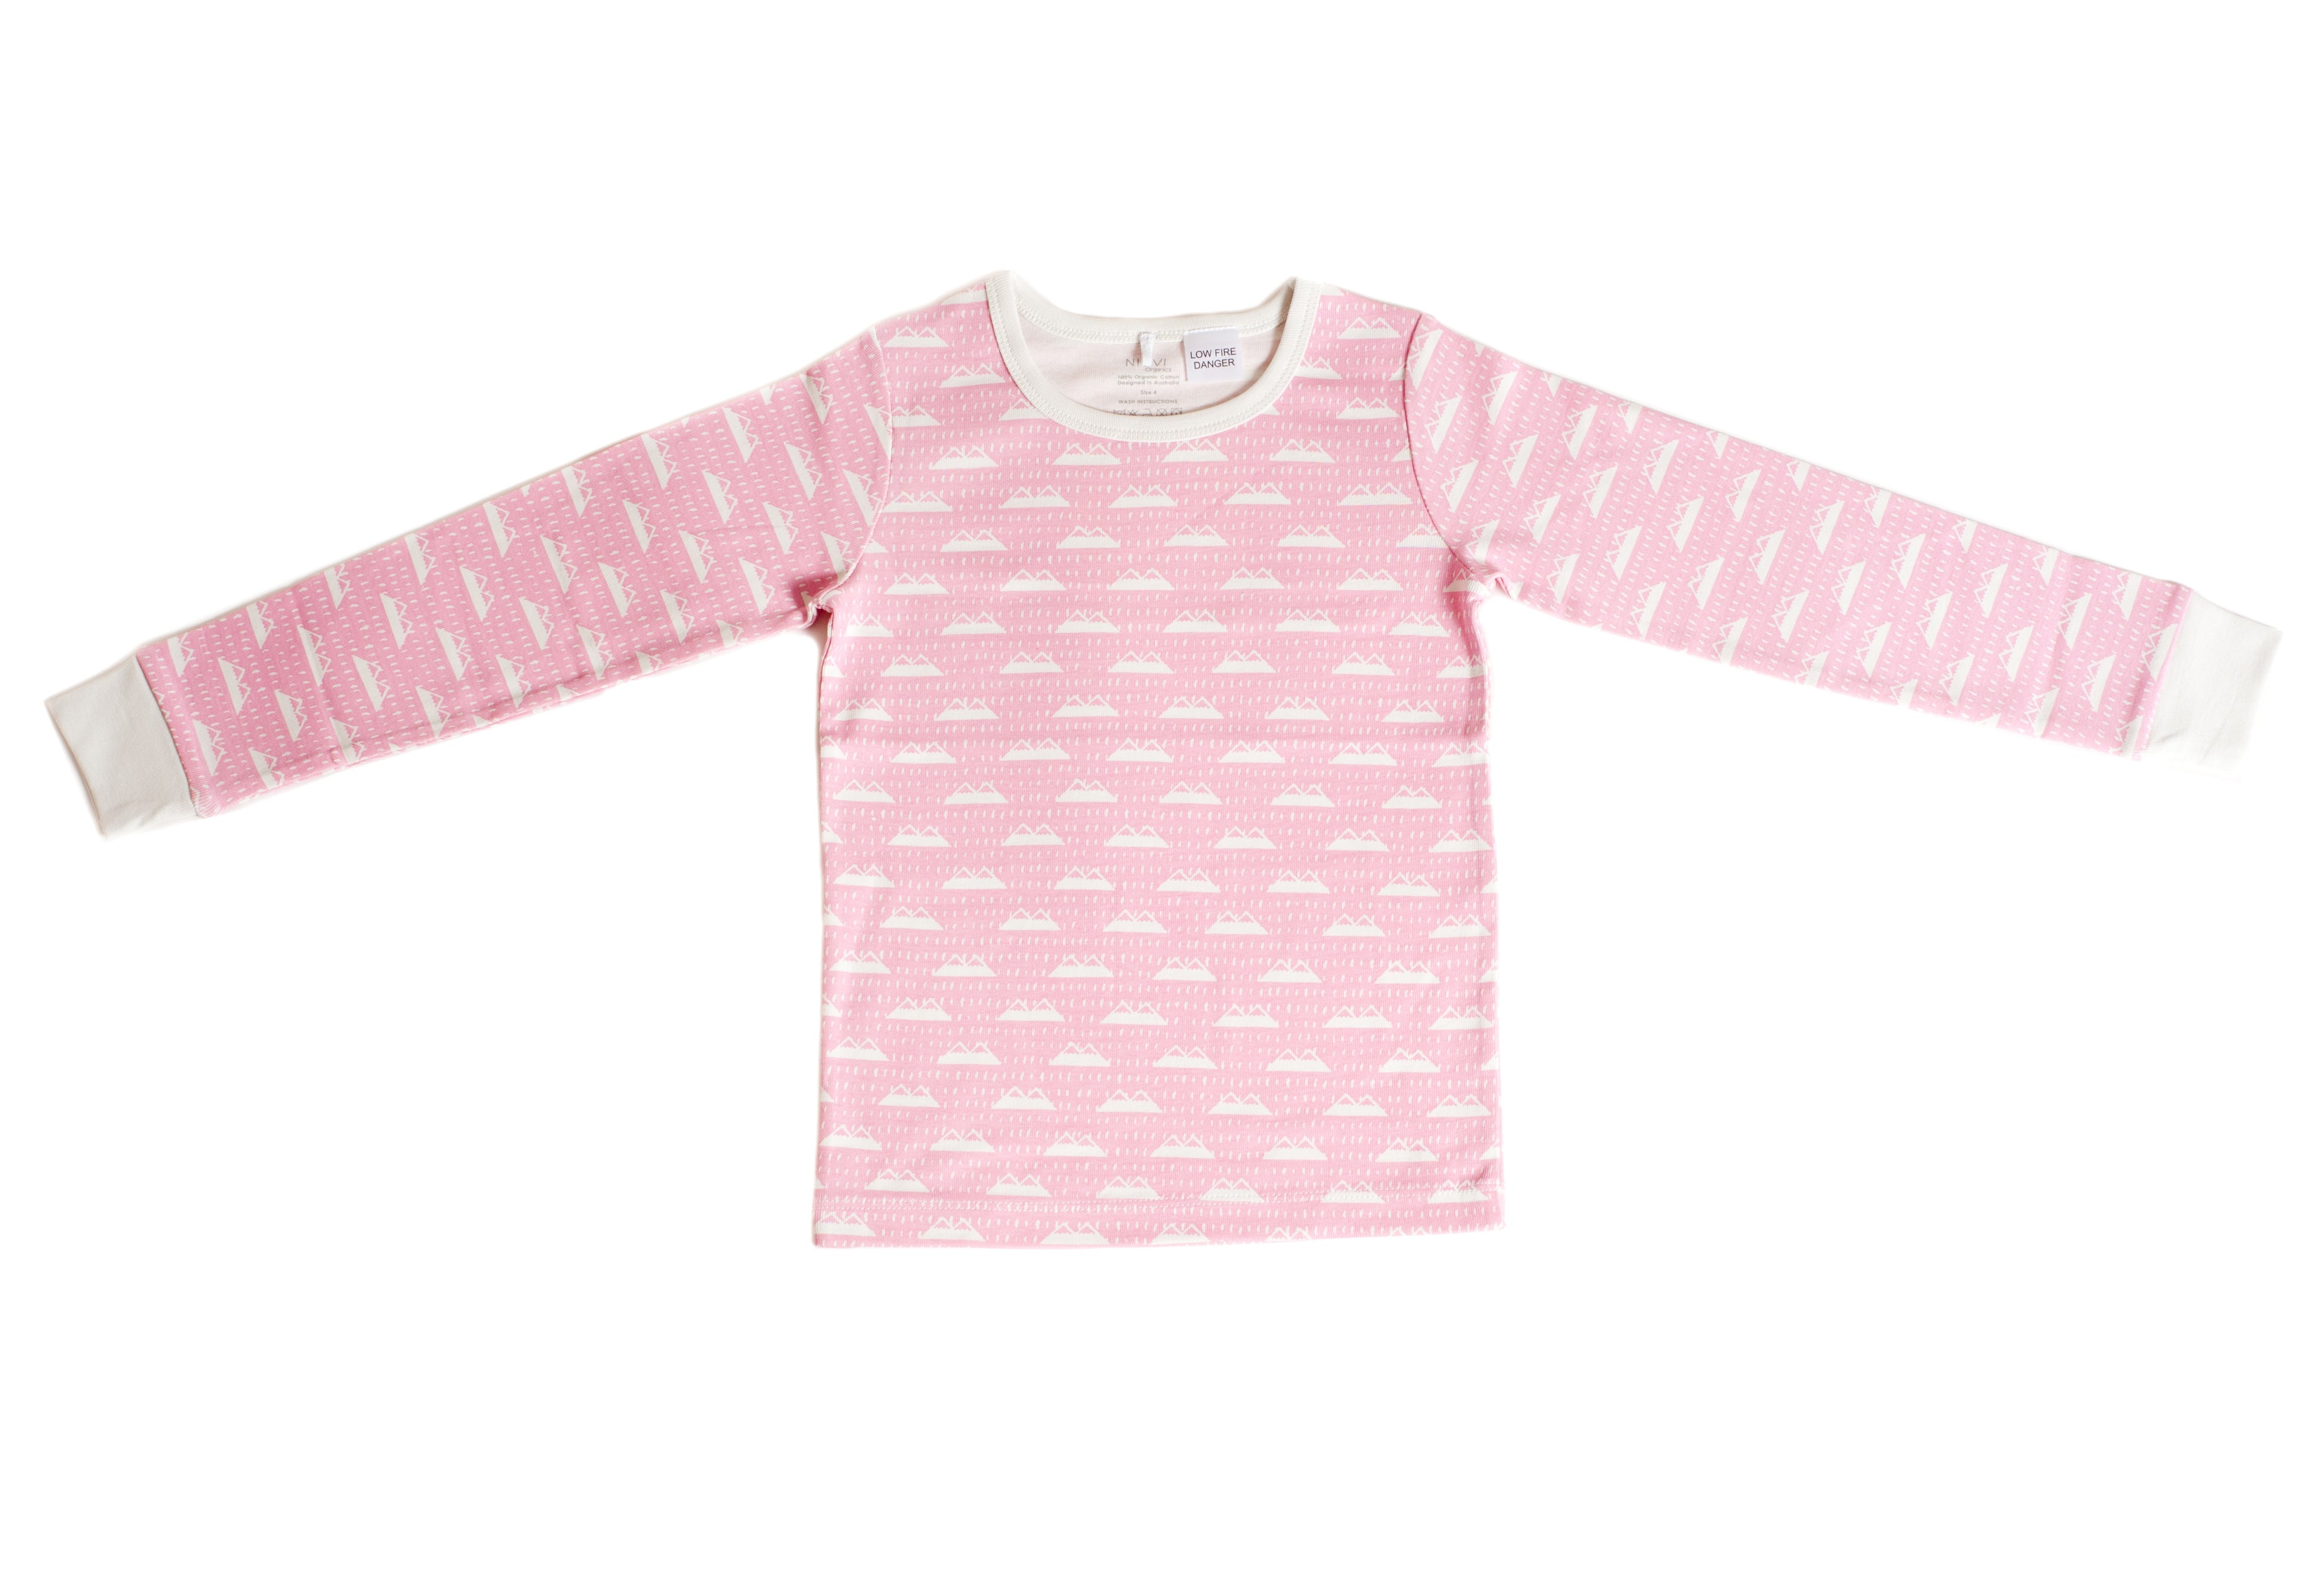 Organic Cotton Kids Long John PJ Set -  SNOW MOUNTAIN CANDYPINK